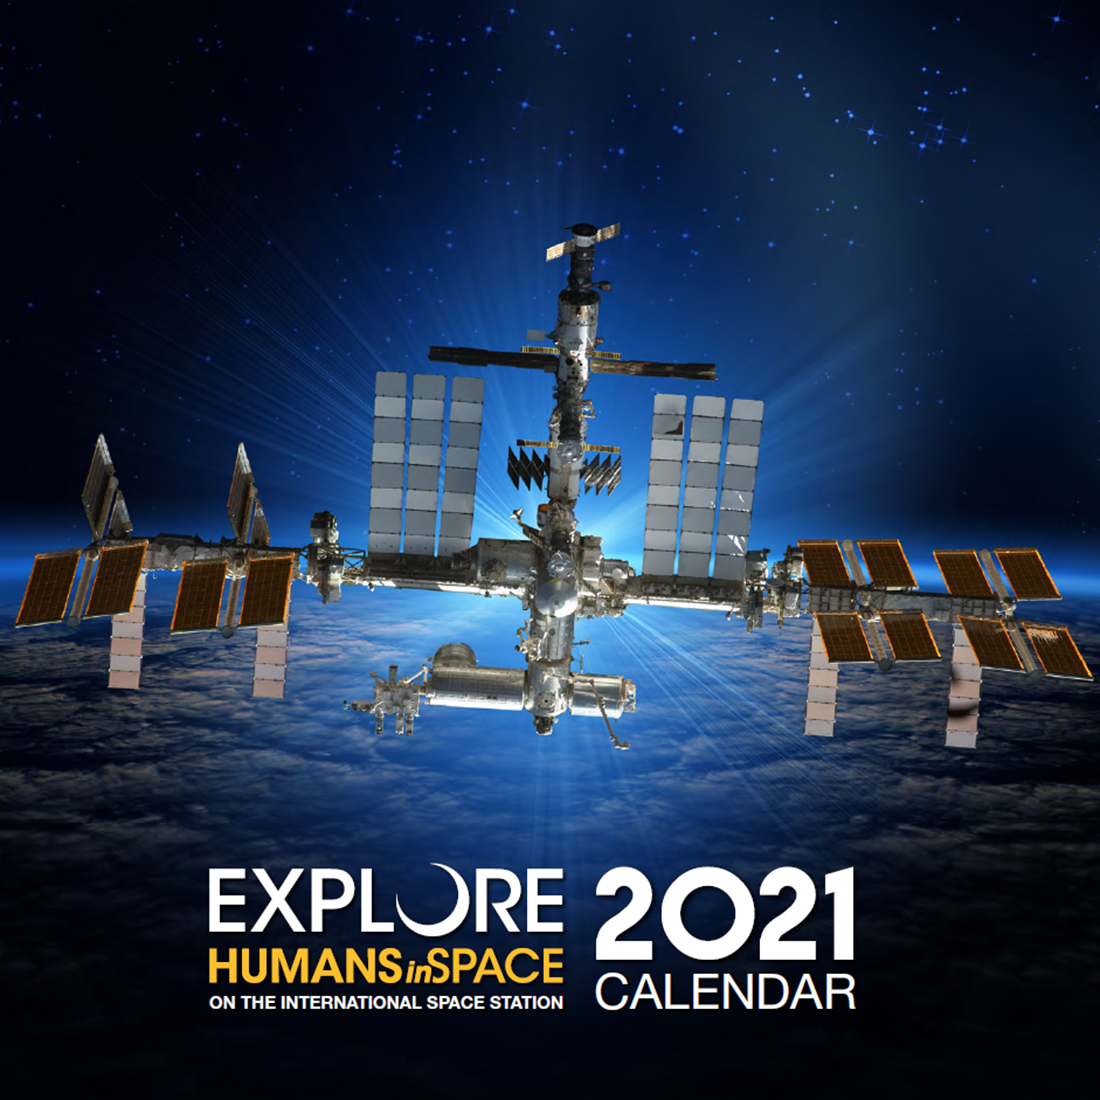 The International Space Station 2021 calendar is online now! Download the 8 MB PDF file that highlights our orbiting lab. go.nasa.gov/3op0xvv